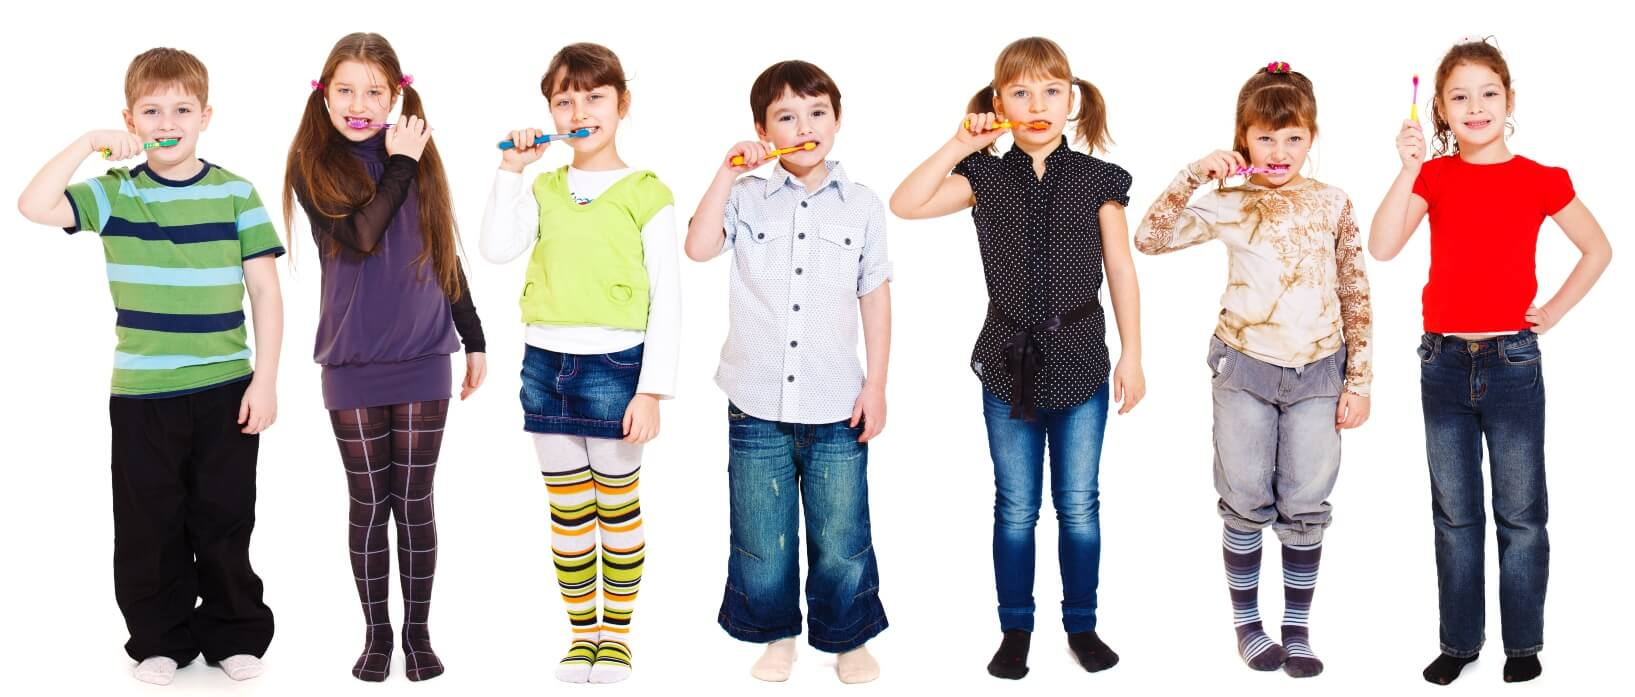 7 children with toothbrushes